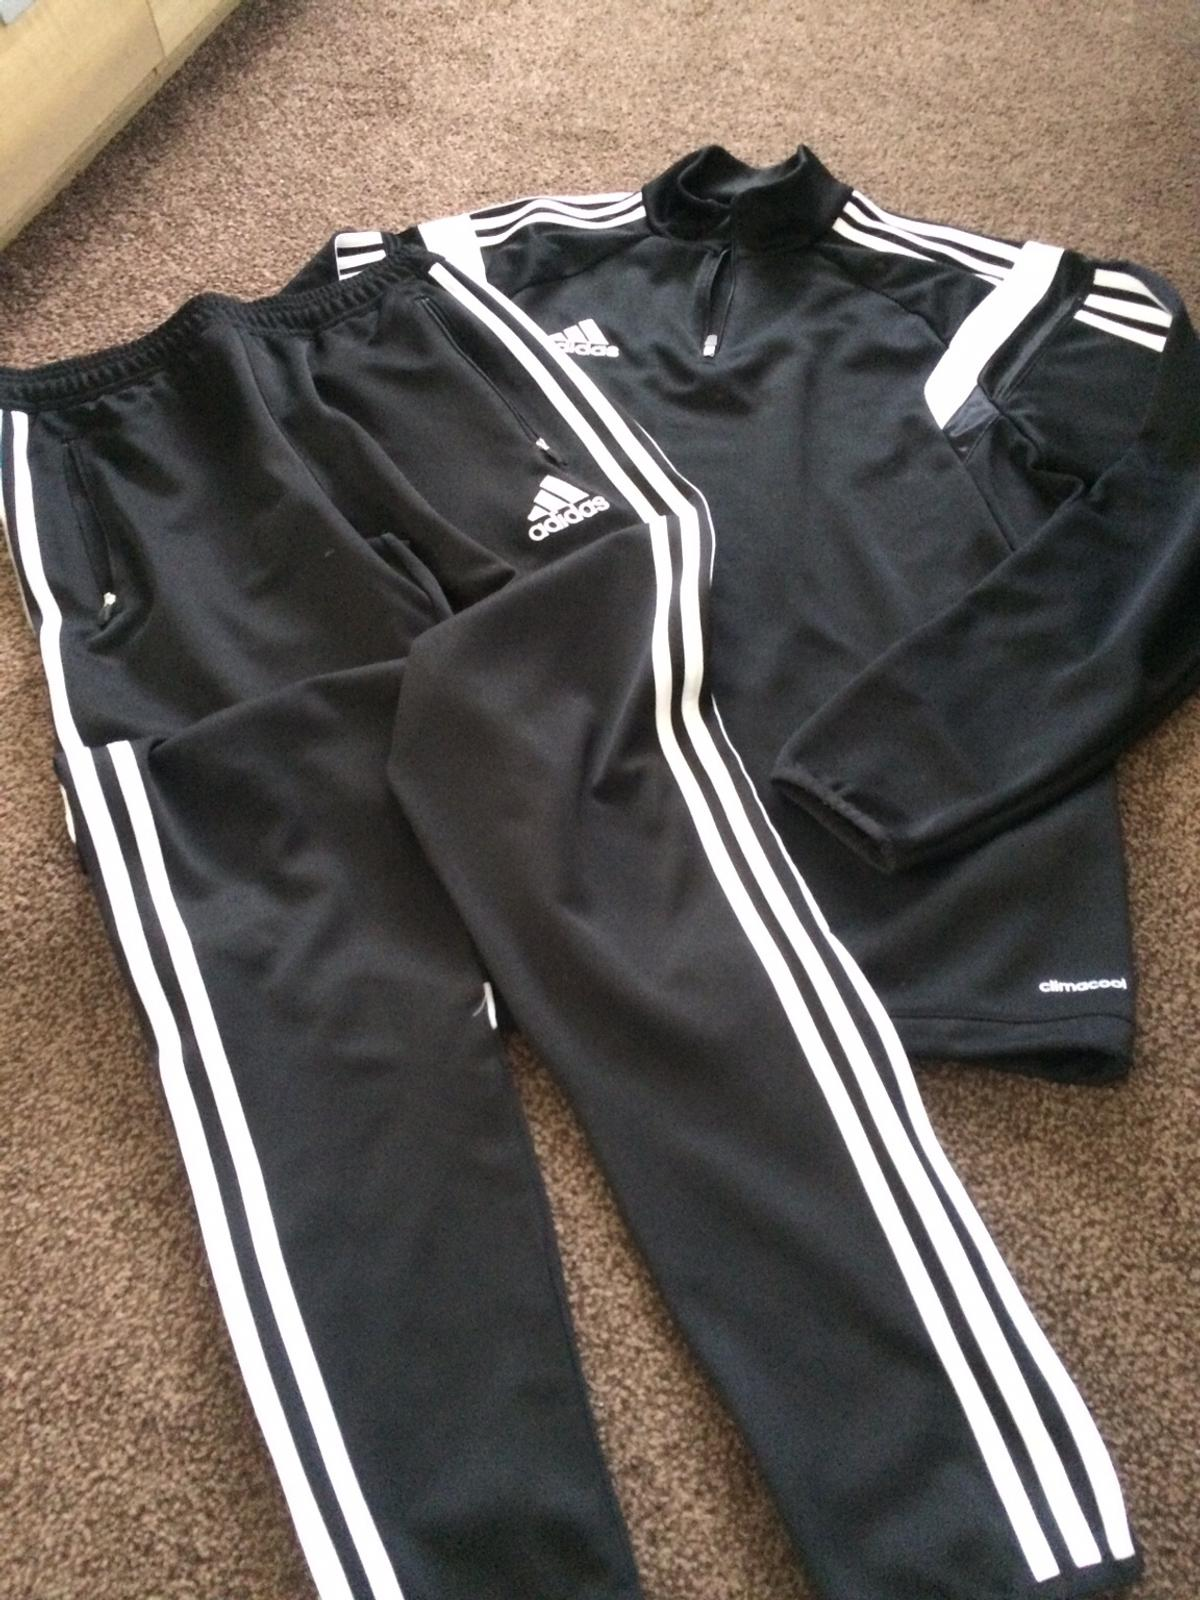 Pants size small, jacket size medium. Excellent condition from a smoke and pet free home. Collection from Fy1 6LJ